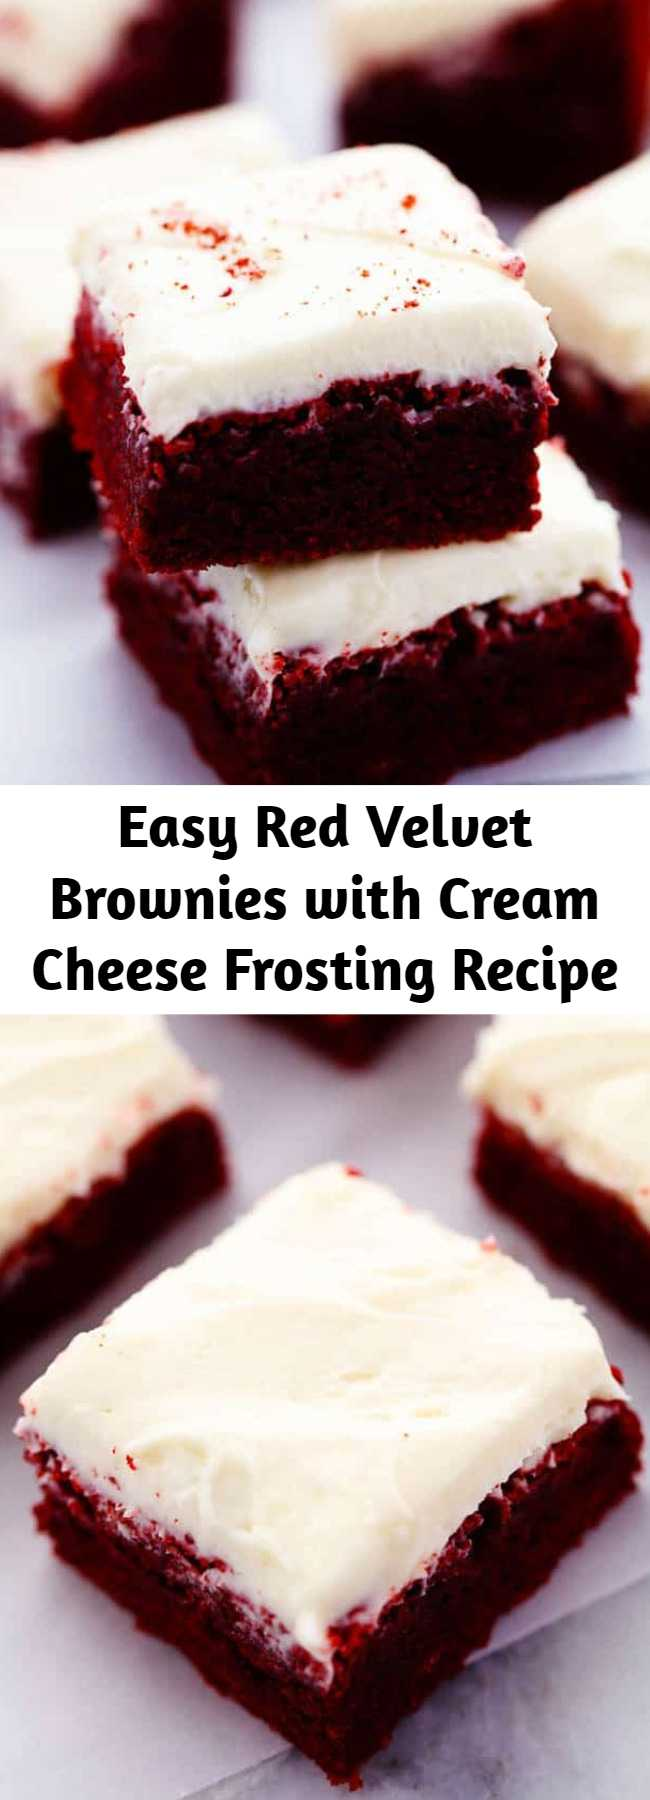 Easy Red Velvet Brownies with Cream Cheese Frosting Recipe - These red velvet brownies are seriously the perfect brownie recipe! Perfectly moist and chewy with the bright red color. The cream cheese frosting is the perfect finishing touch! These are AMAZING!